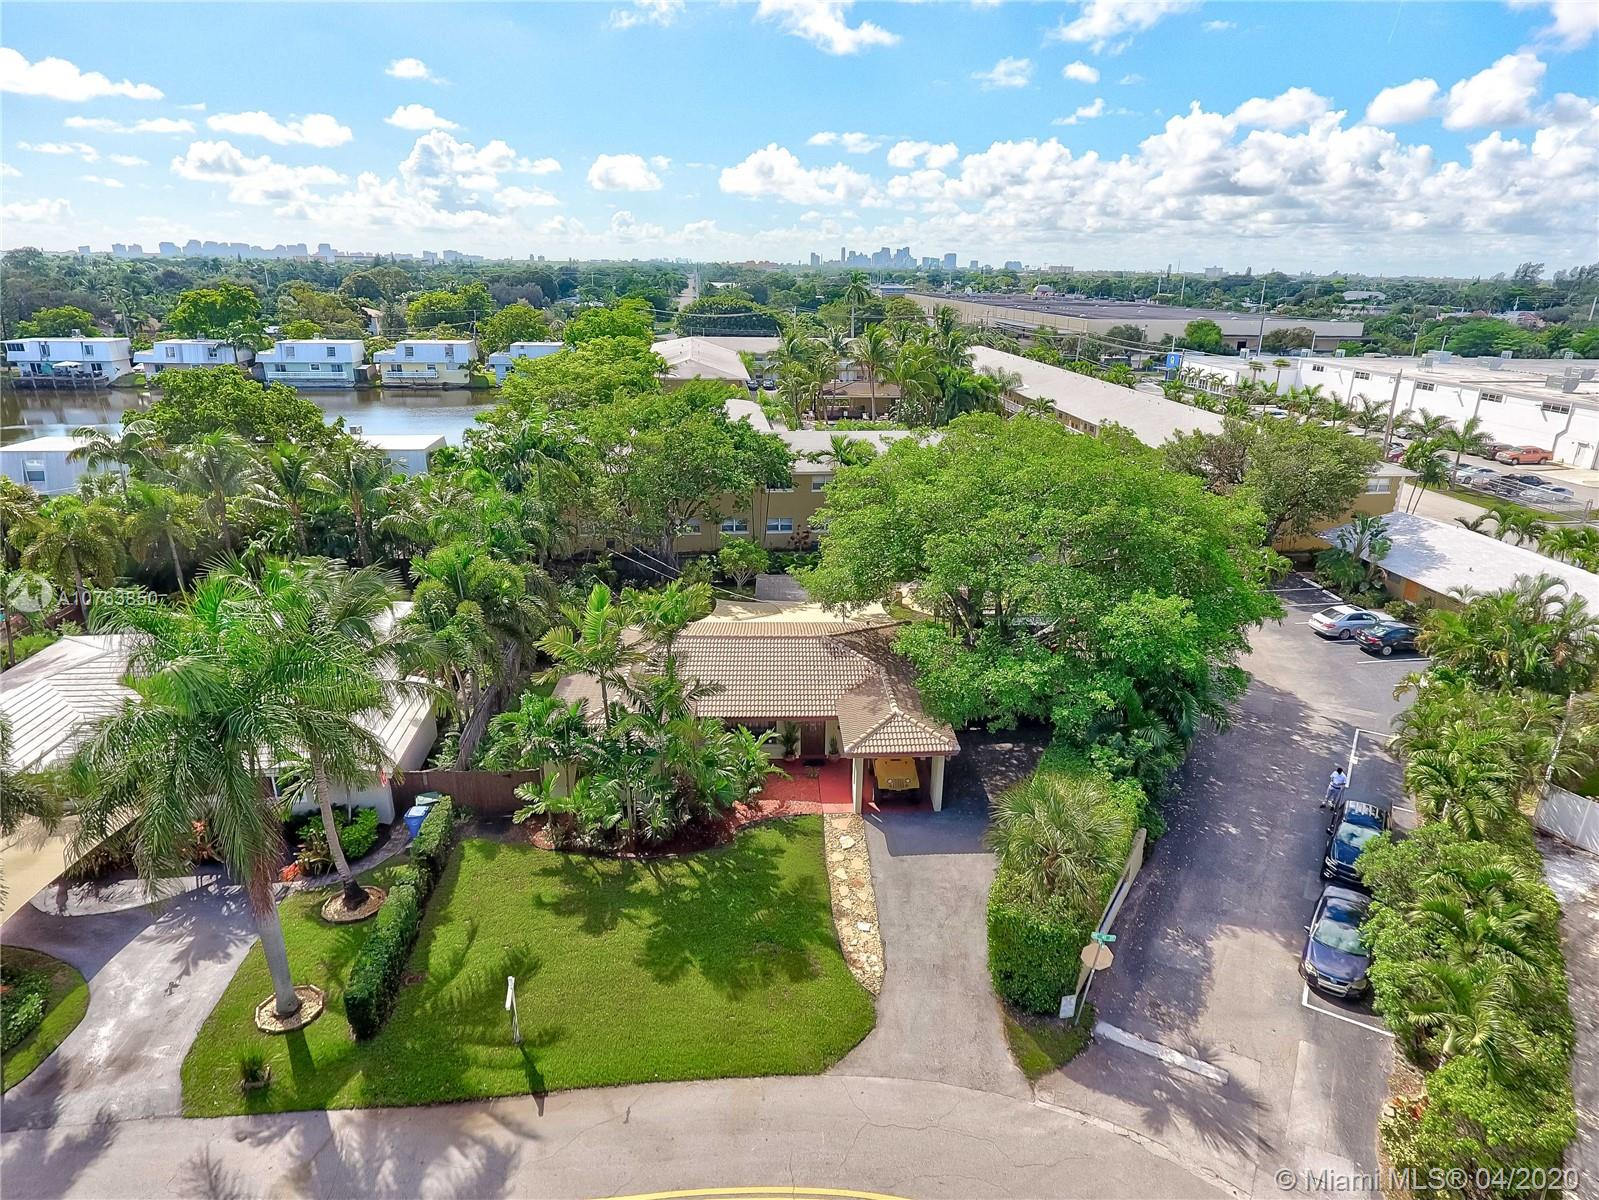 Single Family home located in the up and coming area of Oakland Park, Lot is 9844 sqft, plenty of space to build a pool if desired, or great backyard for entertaining, Great cute house with lots of potential to update at your own taste,upgrades include, new electrical box, Brand new gas water heater tank, New Roof installed December 2018. Close to Dixie highway and US1, easy to get to 95 and walking distance from restaurants and brewery , easy to get to Fort Lauderdale airport and Las Olas Blvd.